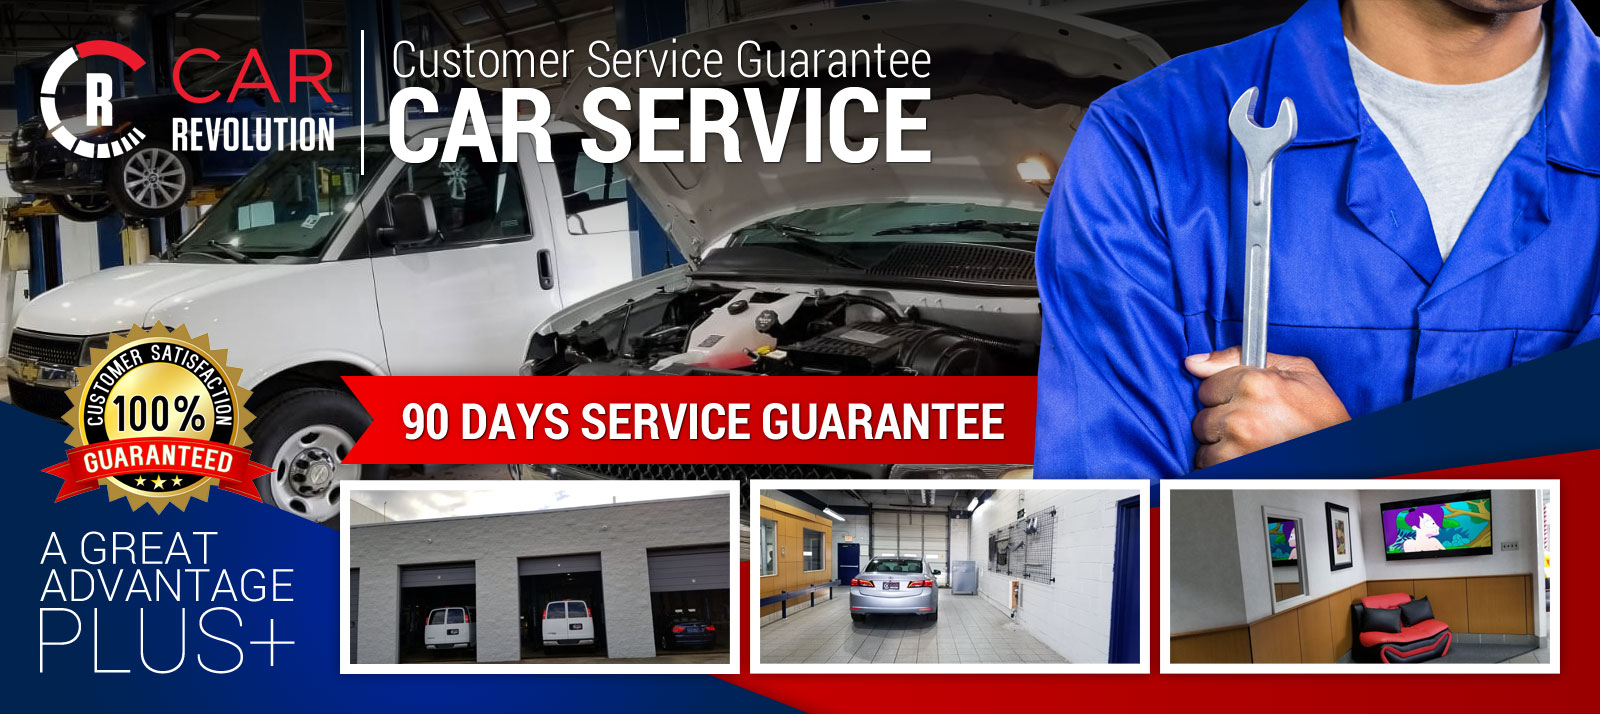 90 days service guarantee